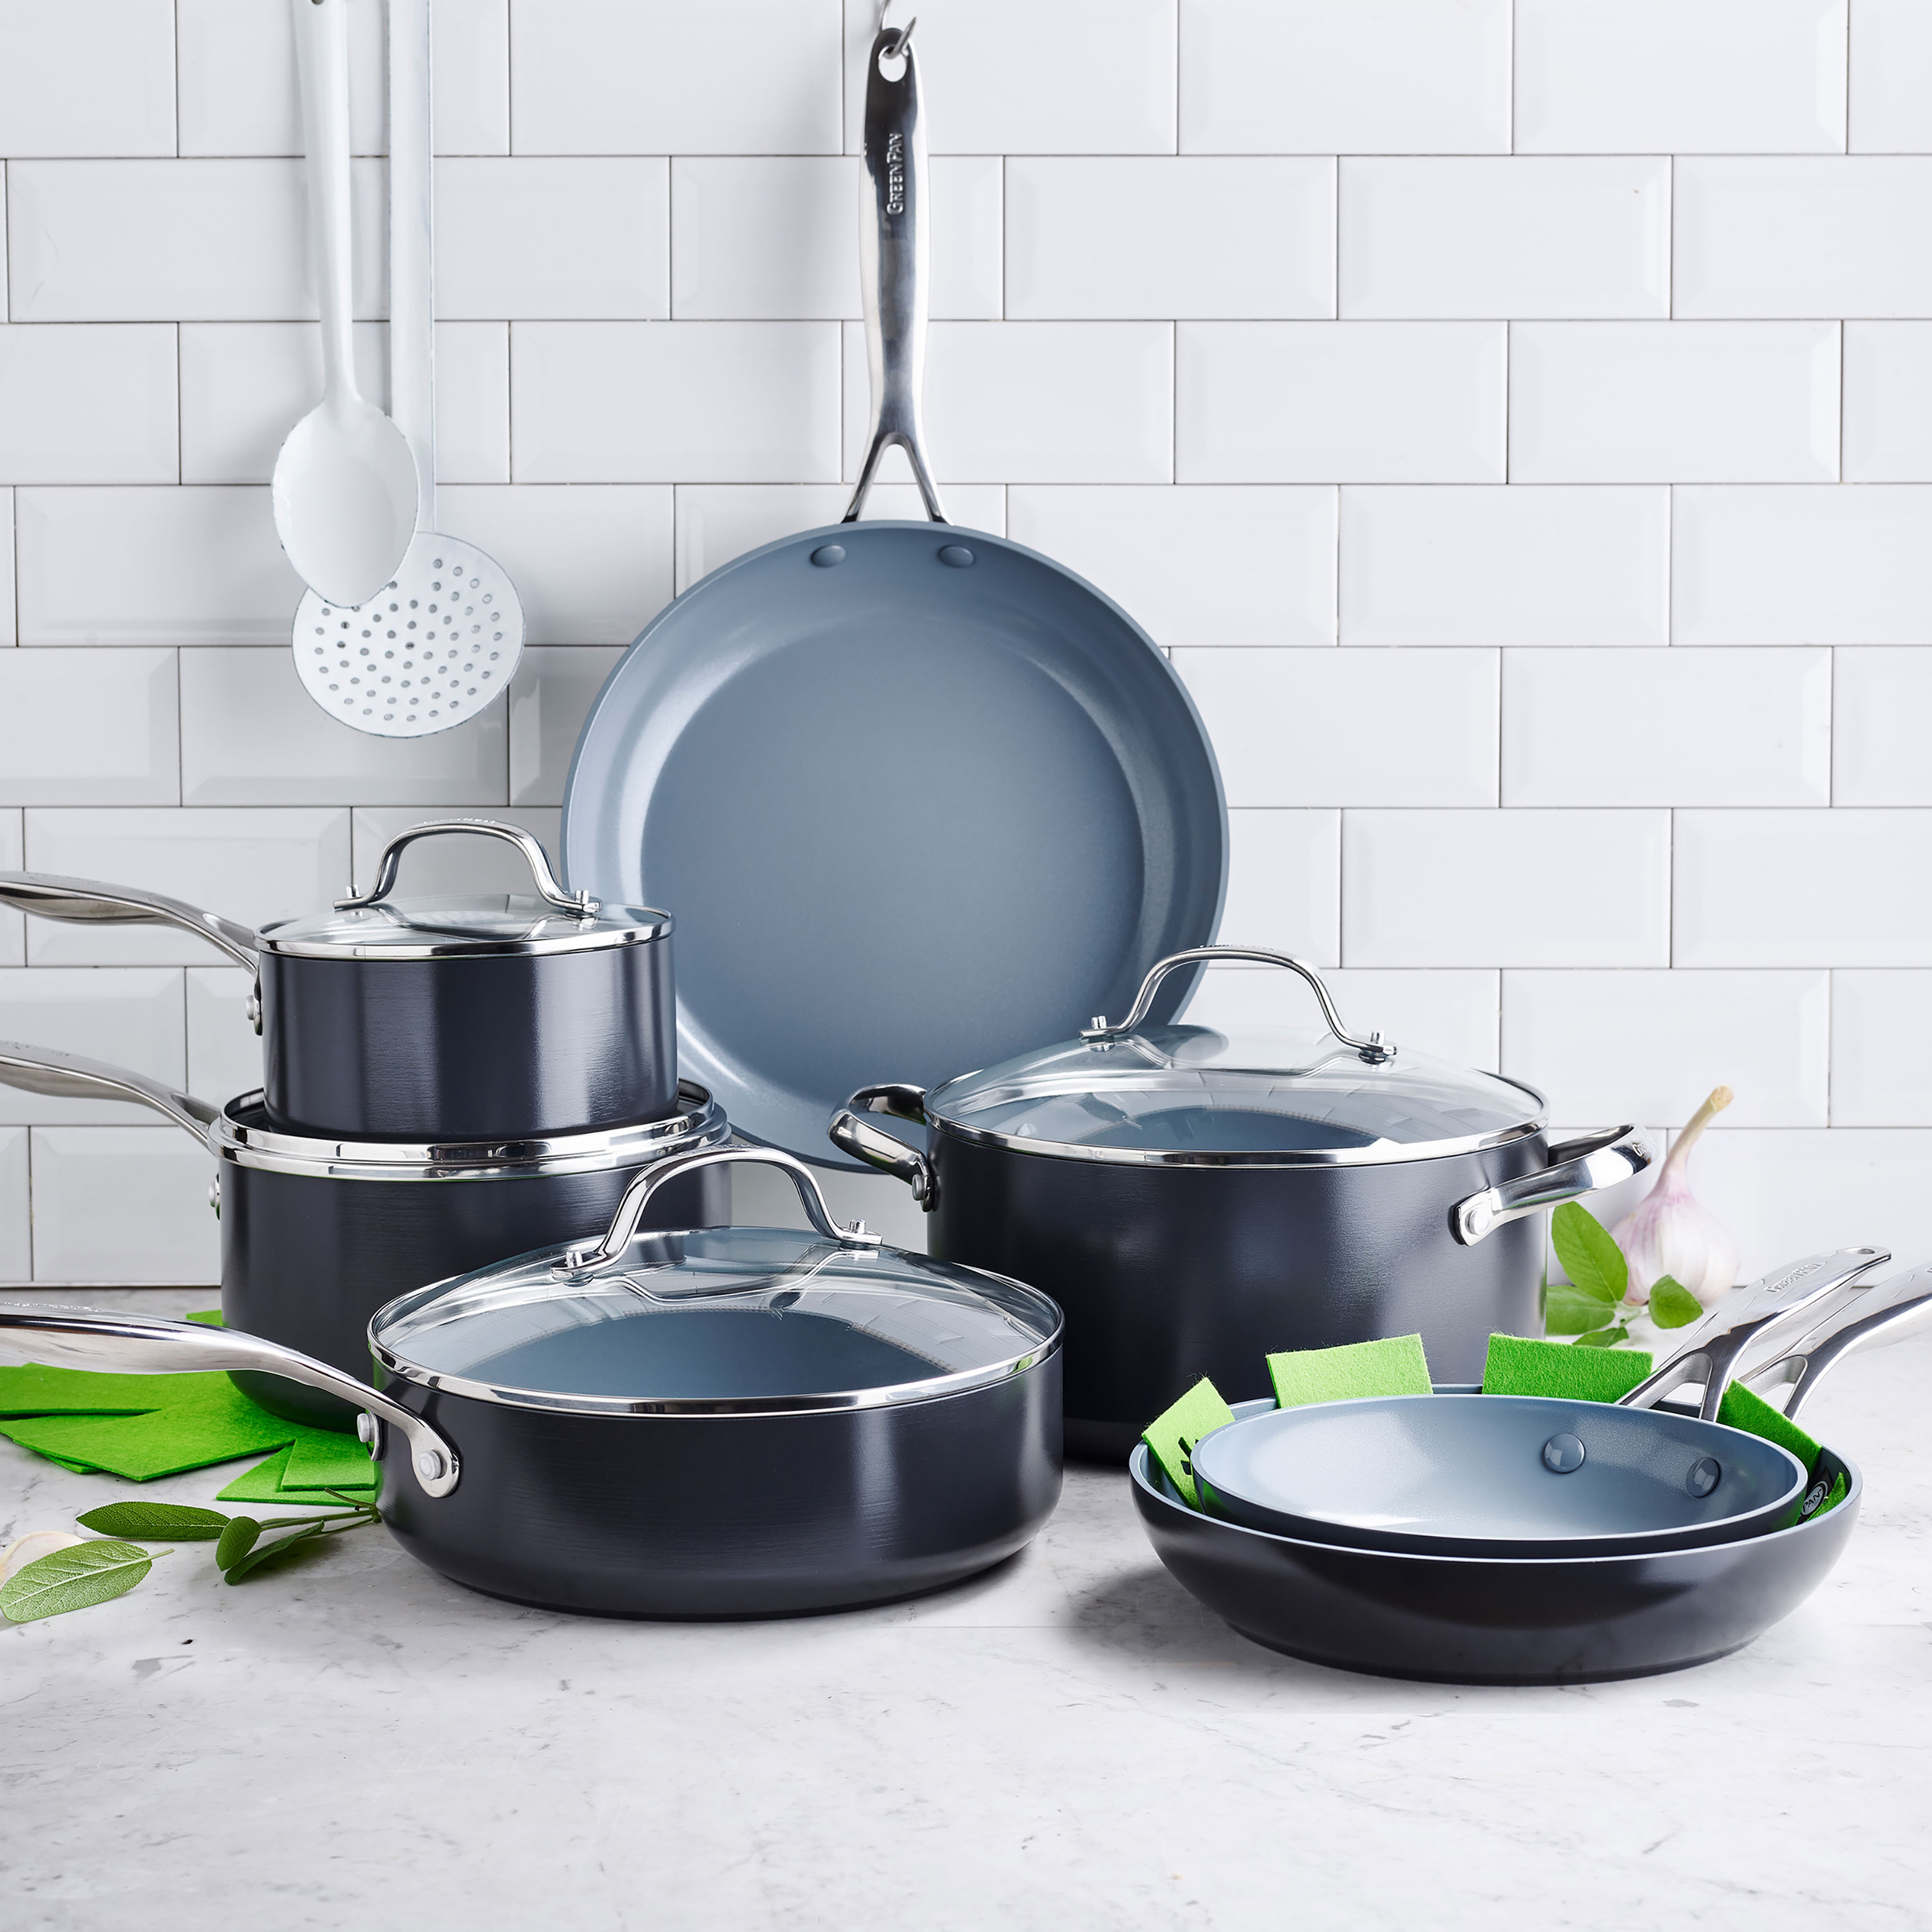 GreenPan Valencia Pro 11 Piece Nonstick Cookware Set with Bonus Cookware  Protectors